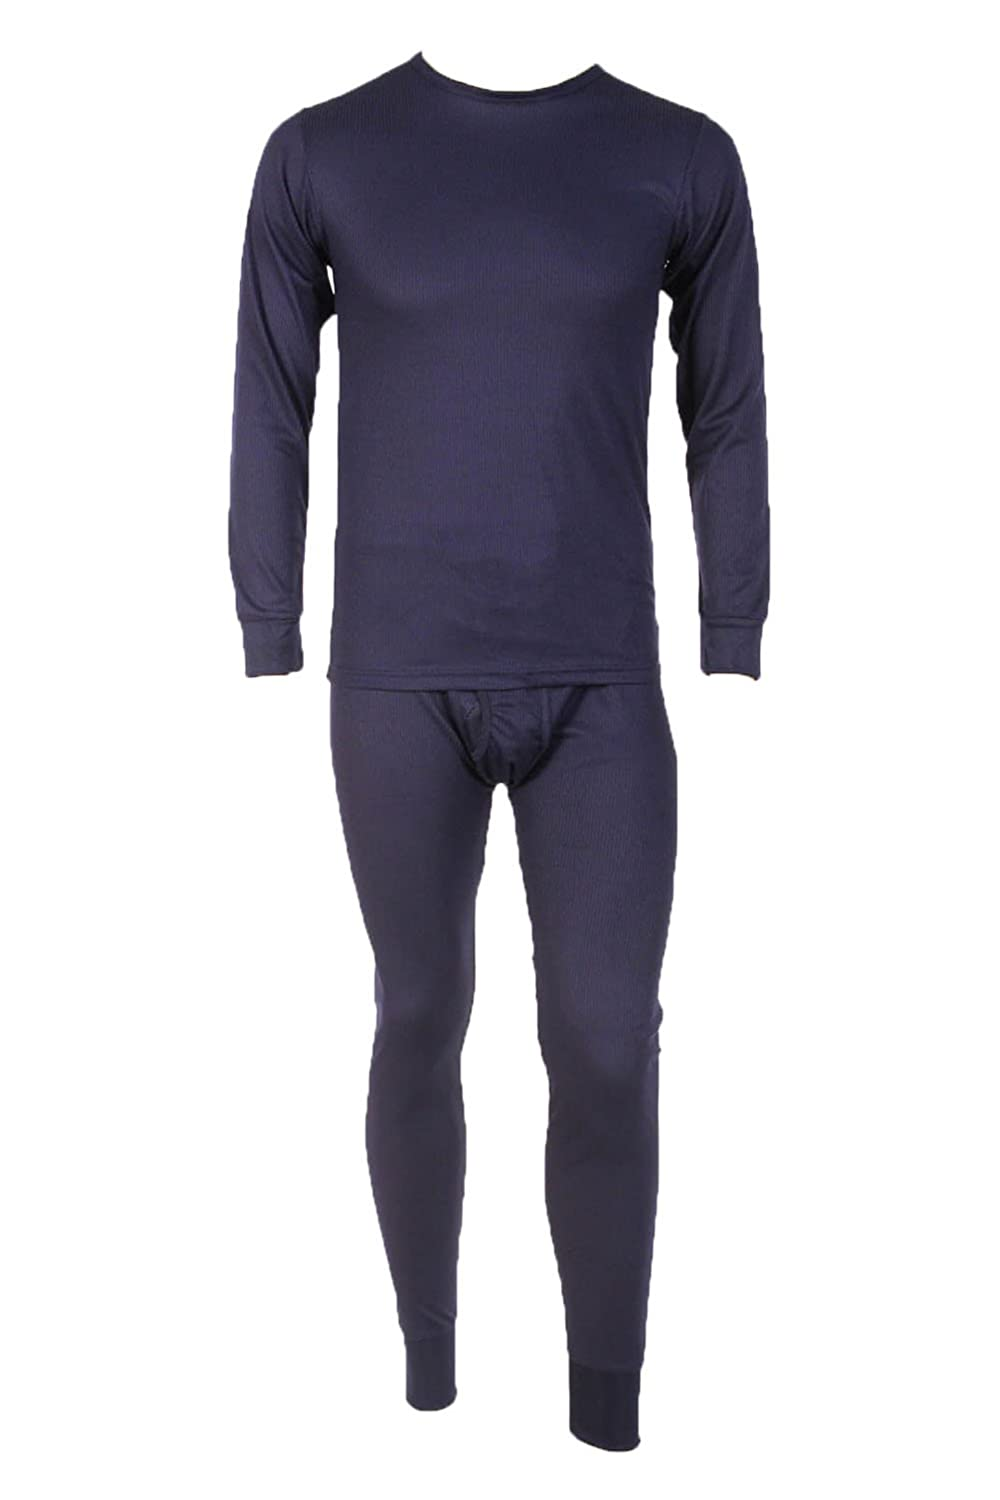 Men's Two Piece Long Johns Thermal Underwear Set at Amazon Men's ... : quilted long johns - Adamdwight.com